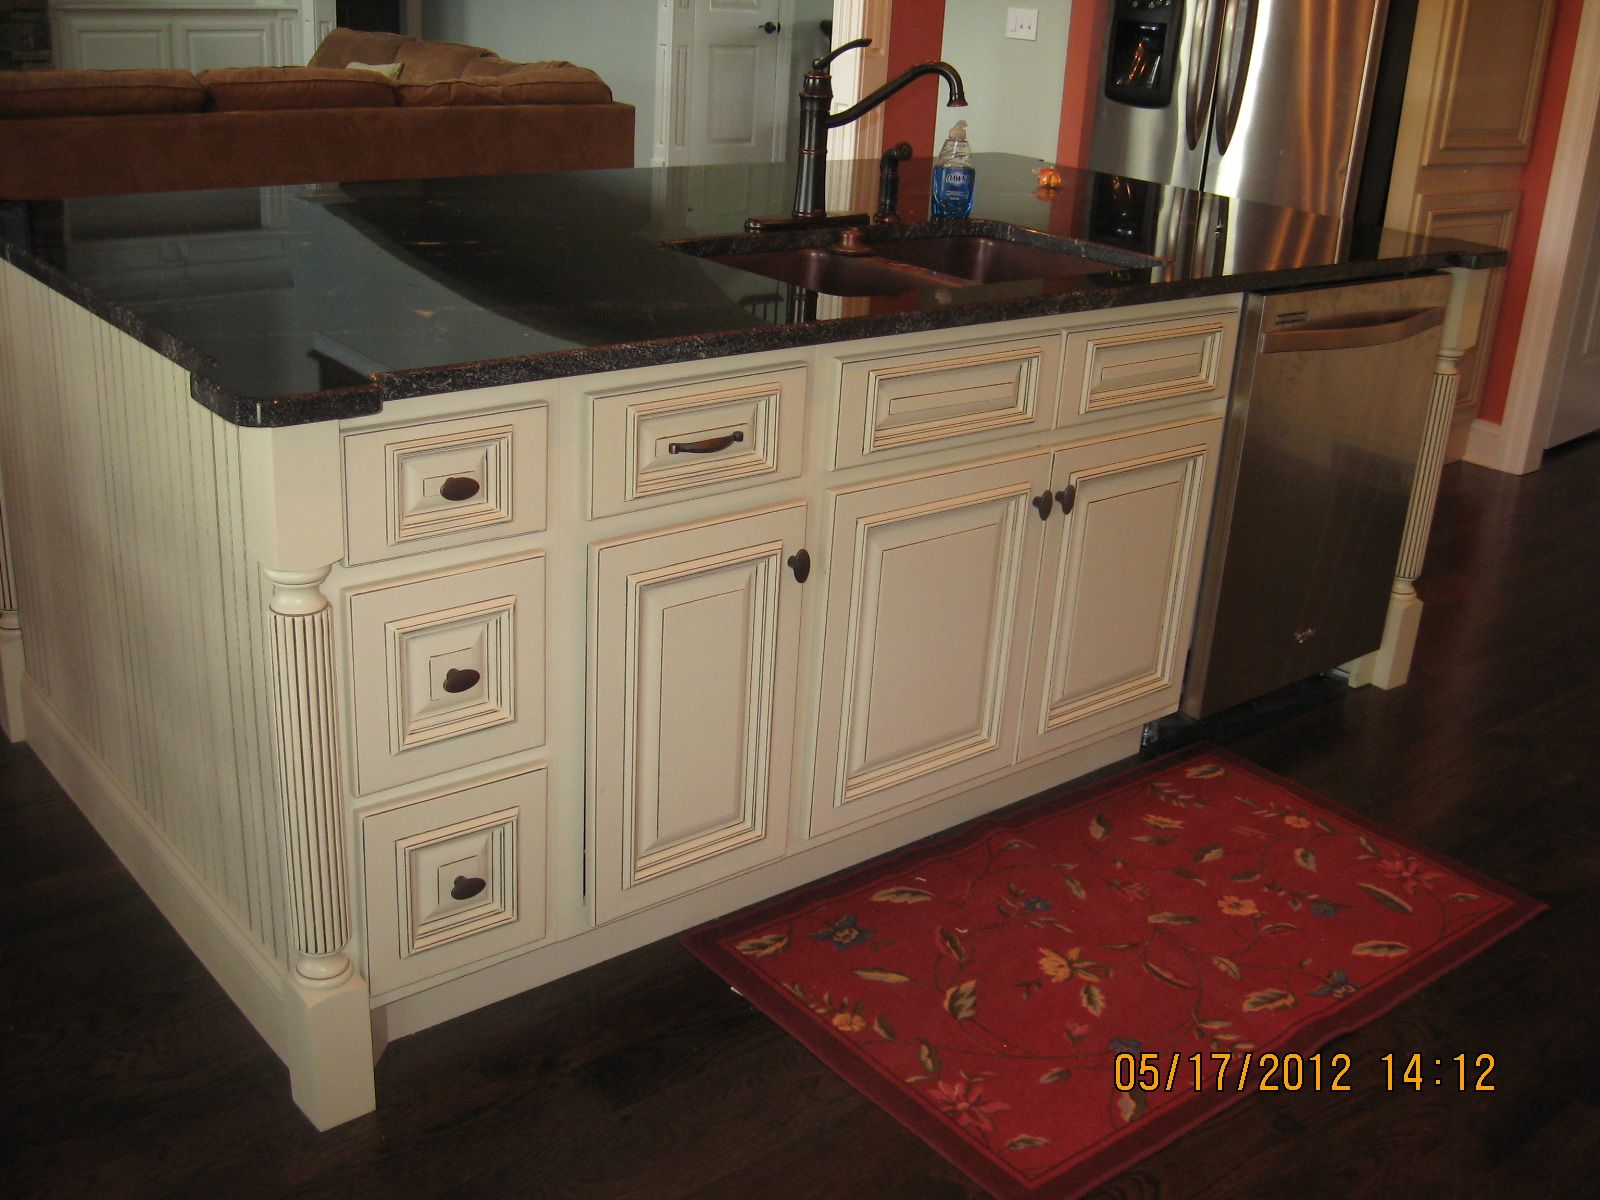 Kitchen Islands With Dishwasher Kitchen Island With Sink And Dishwasher | Home Decor